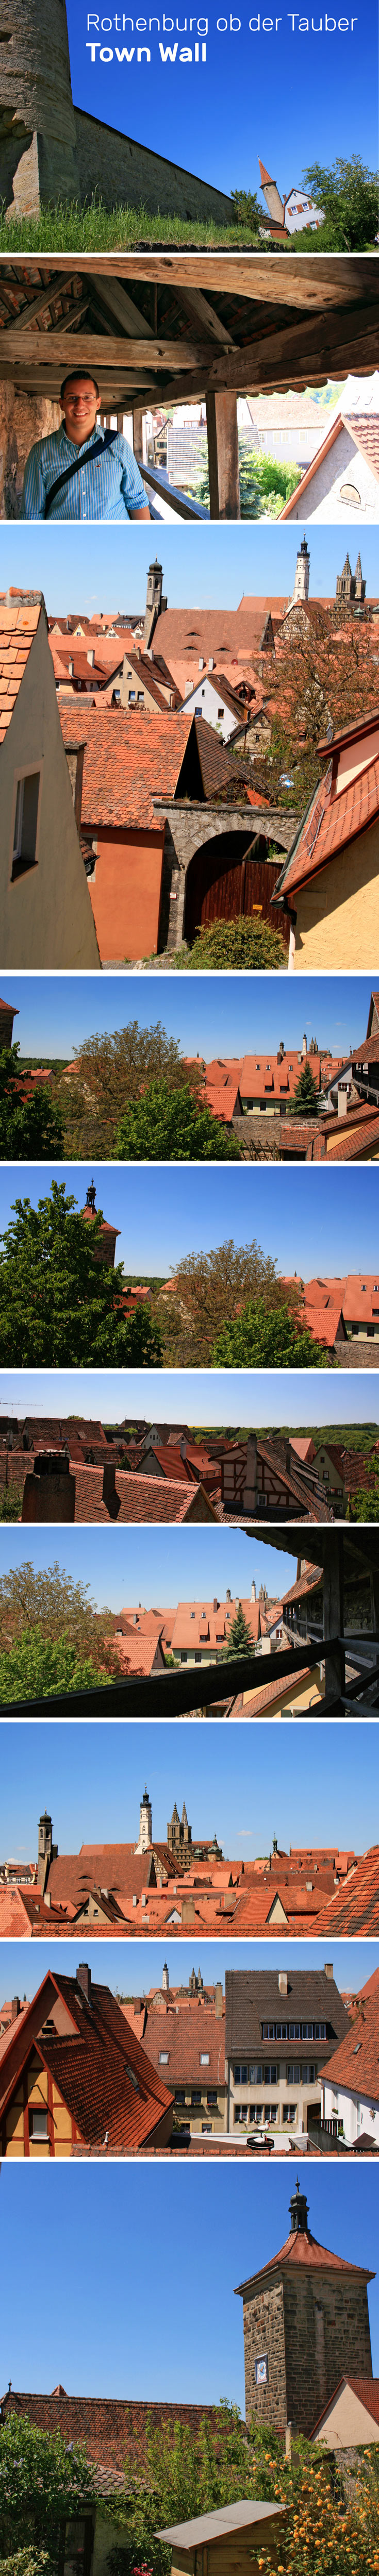 Various views you can enjoy from a walk along the historic town wall of Rothenburg ob der Tauber